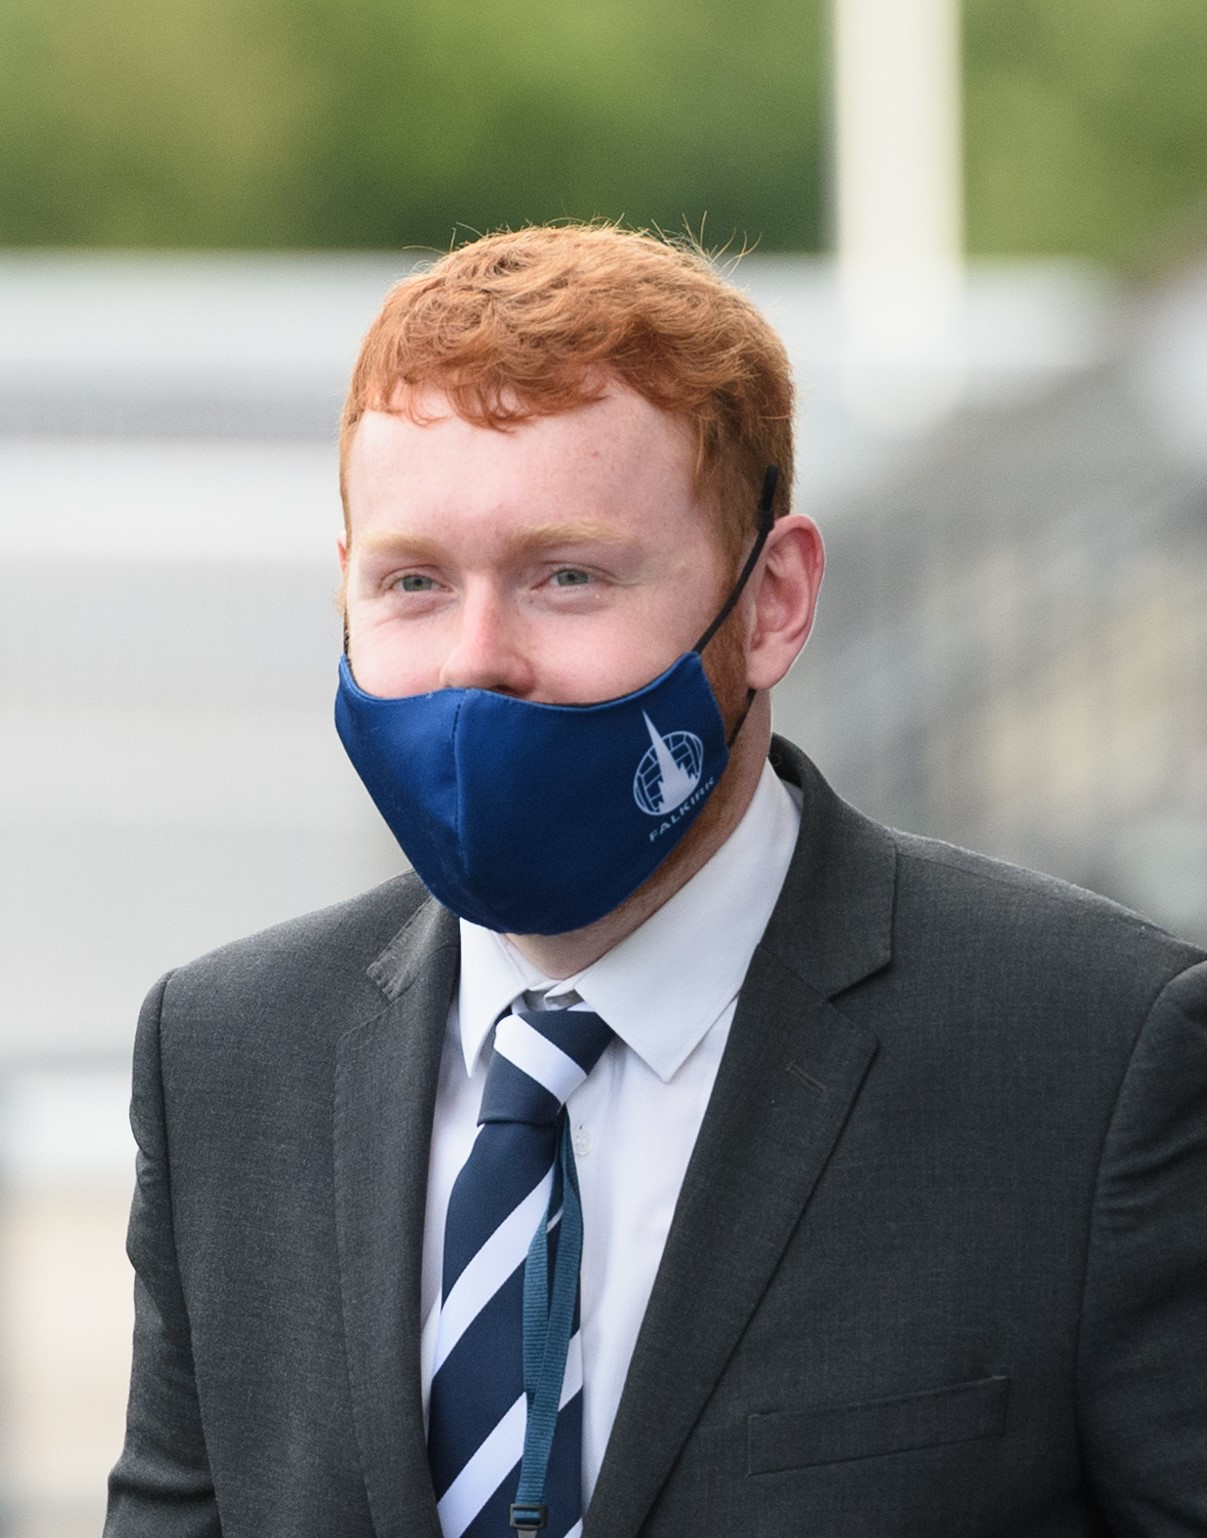 This image has been supplied to Falkirk FC staff for either personal use by players photographed or Commercial use by Falkirk FC.   Use by any other persons for any other purpose without the written permission of copyright holder Ian Sneddon is prohibited.